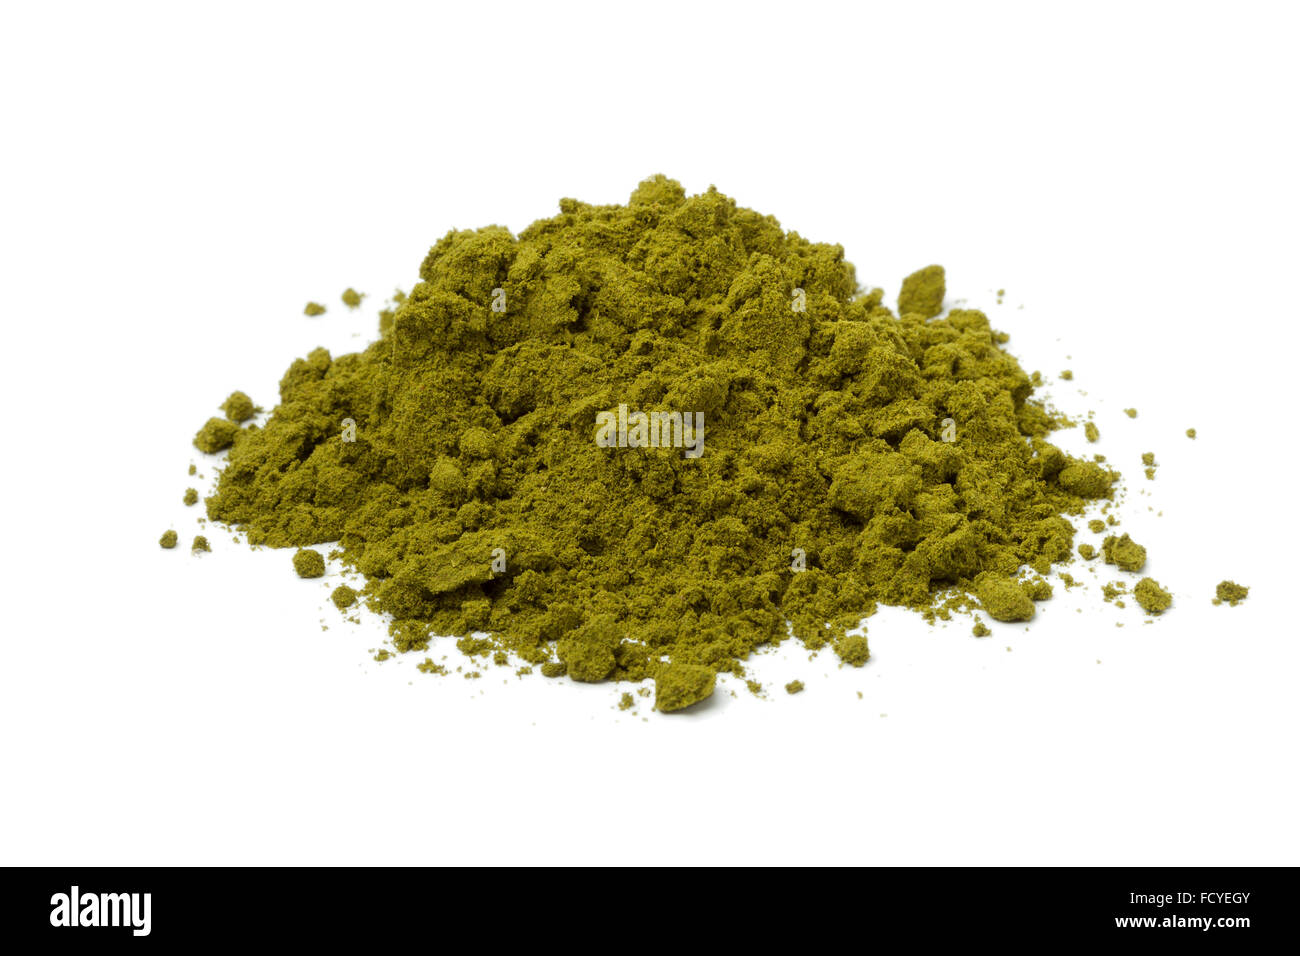 Heap of traditional henna powder on white background - Stock Image